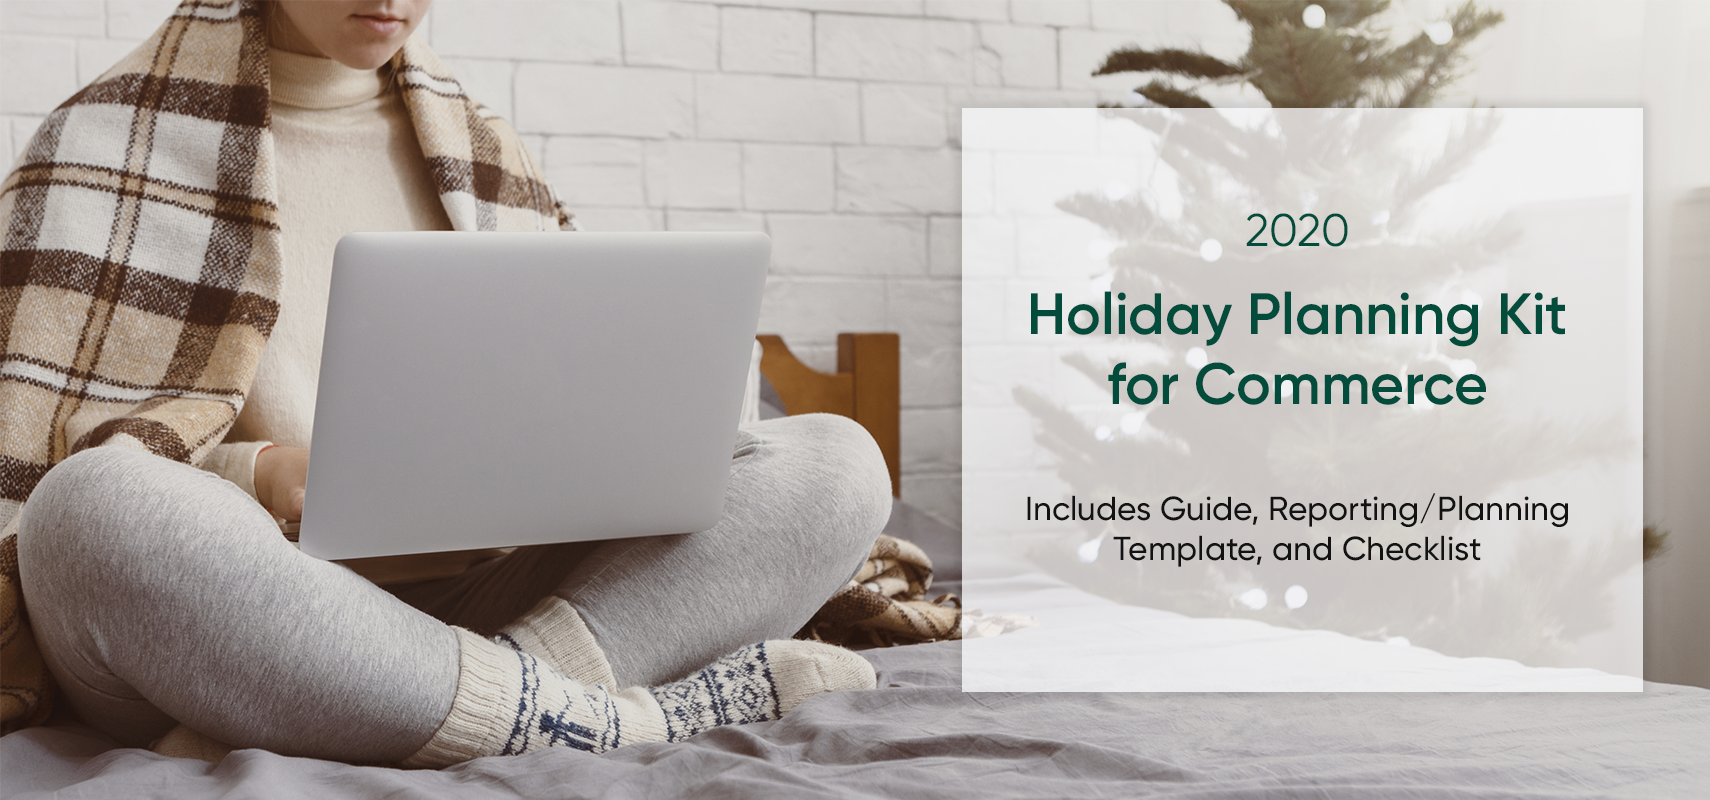 2020 Holiday Planning Kit for Commerce